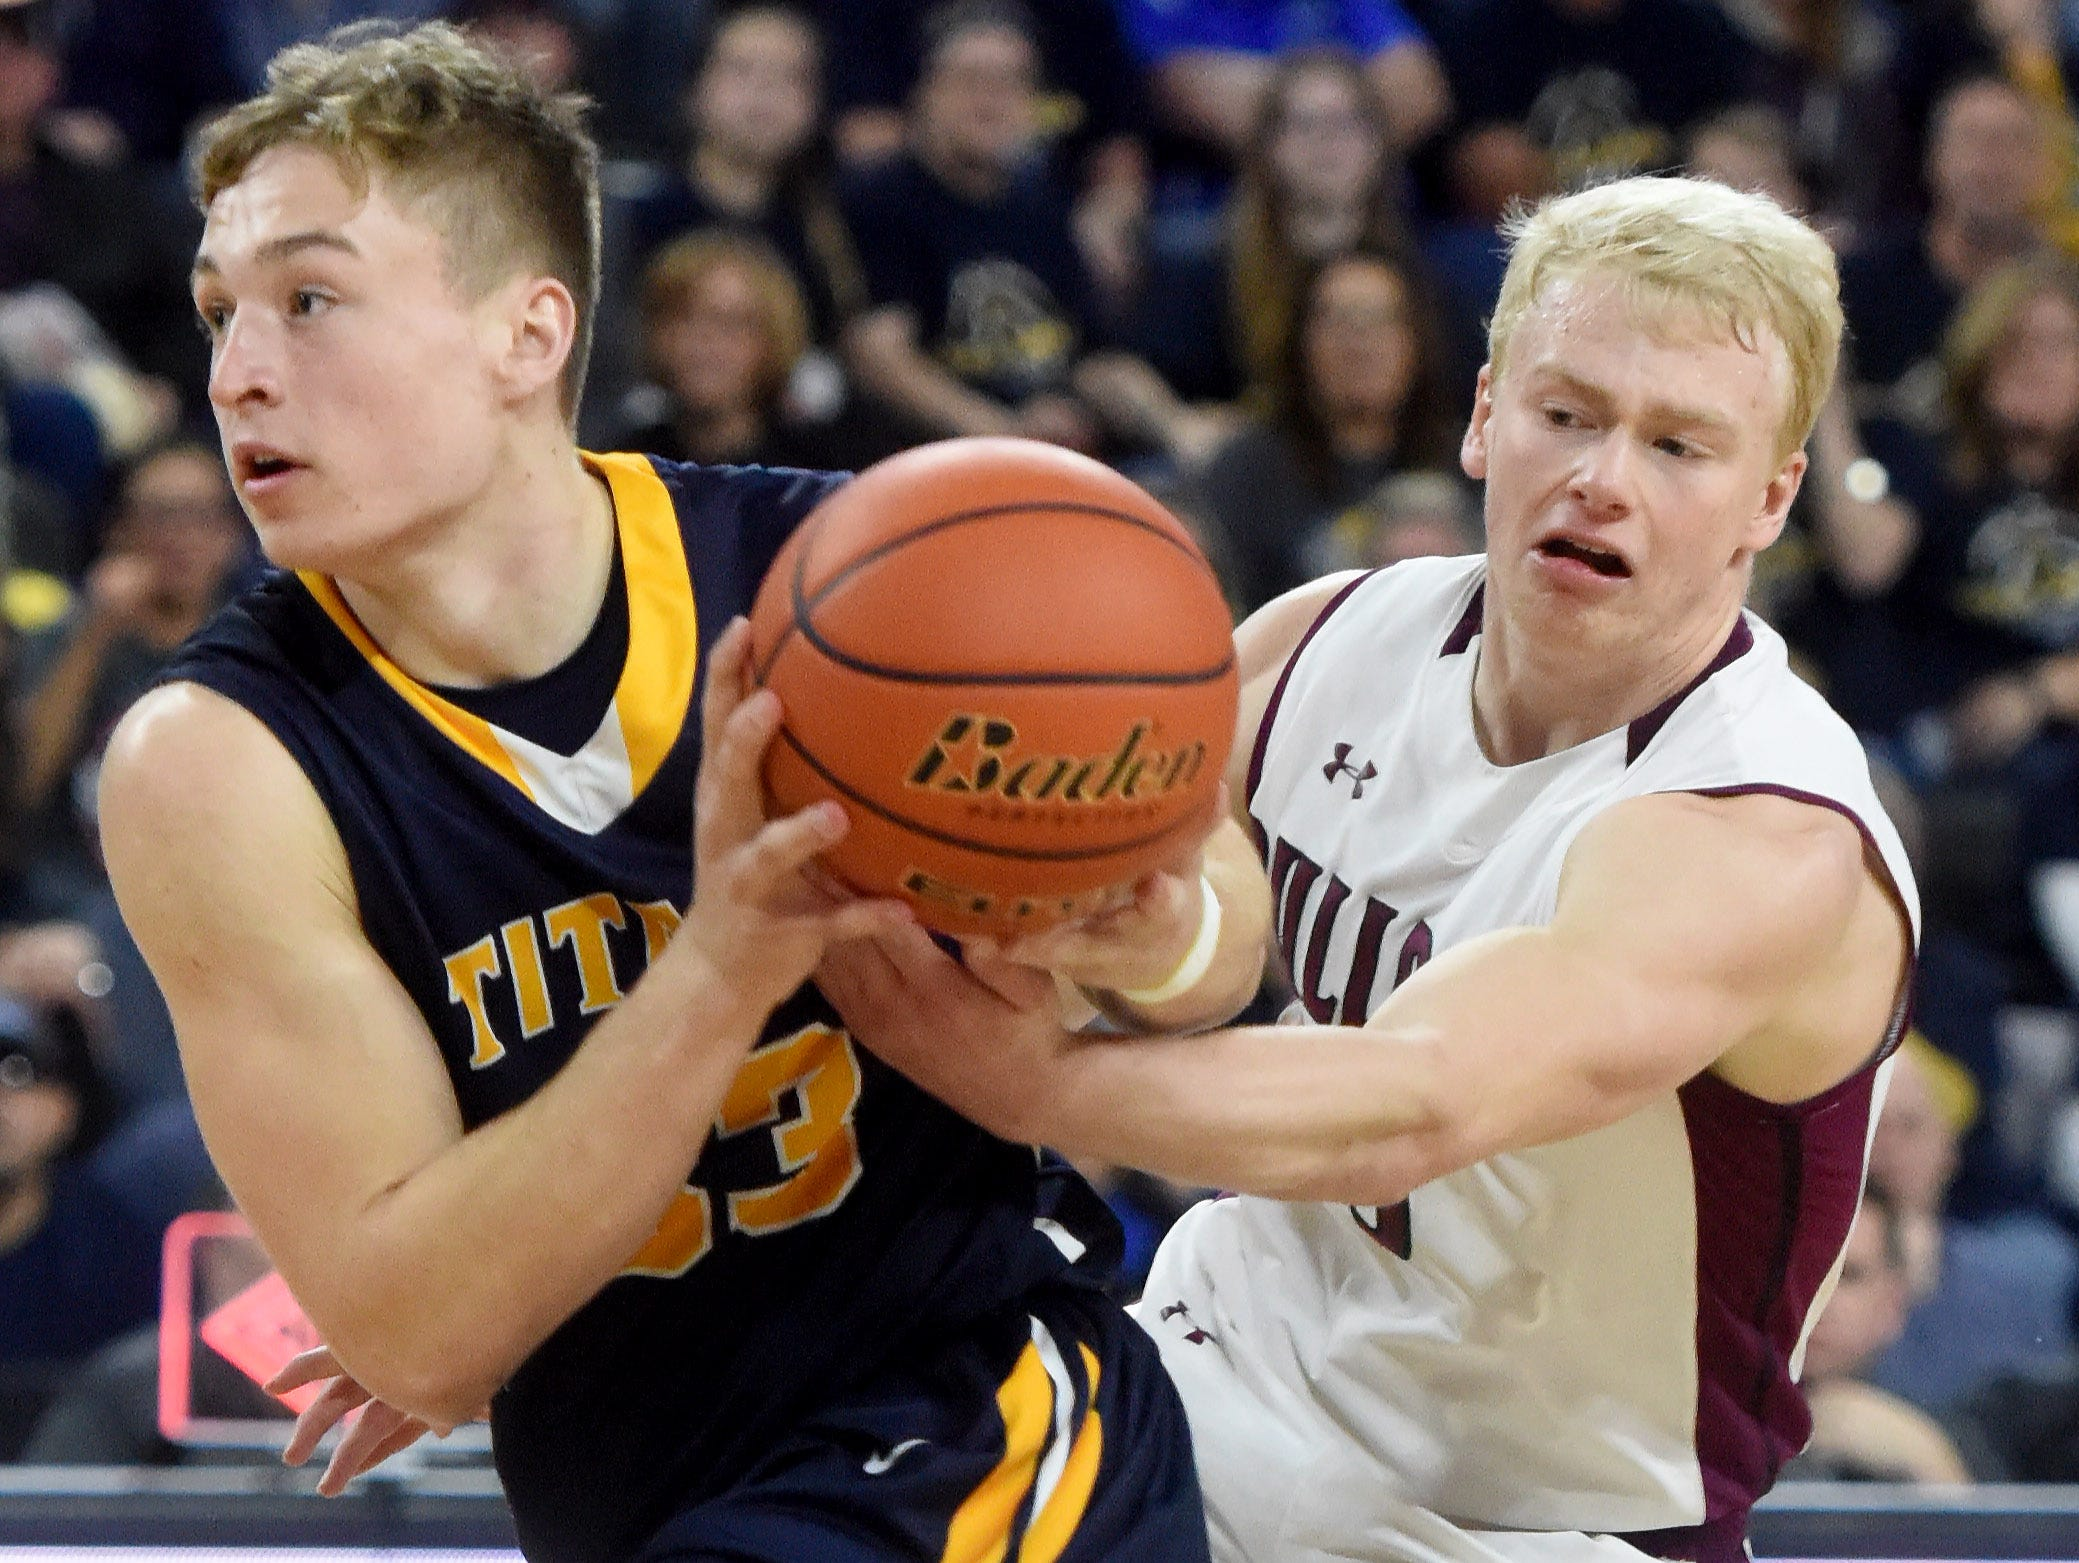 Tea Area's Payton Conrad moves toward the basket while Madison's Mason Leighton defends during the 2017 SDHSAA Class A boy's basketball championship at the Denny Sanford Premier Center on Saturday, March 18, 2017.